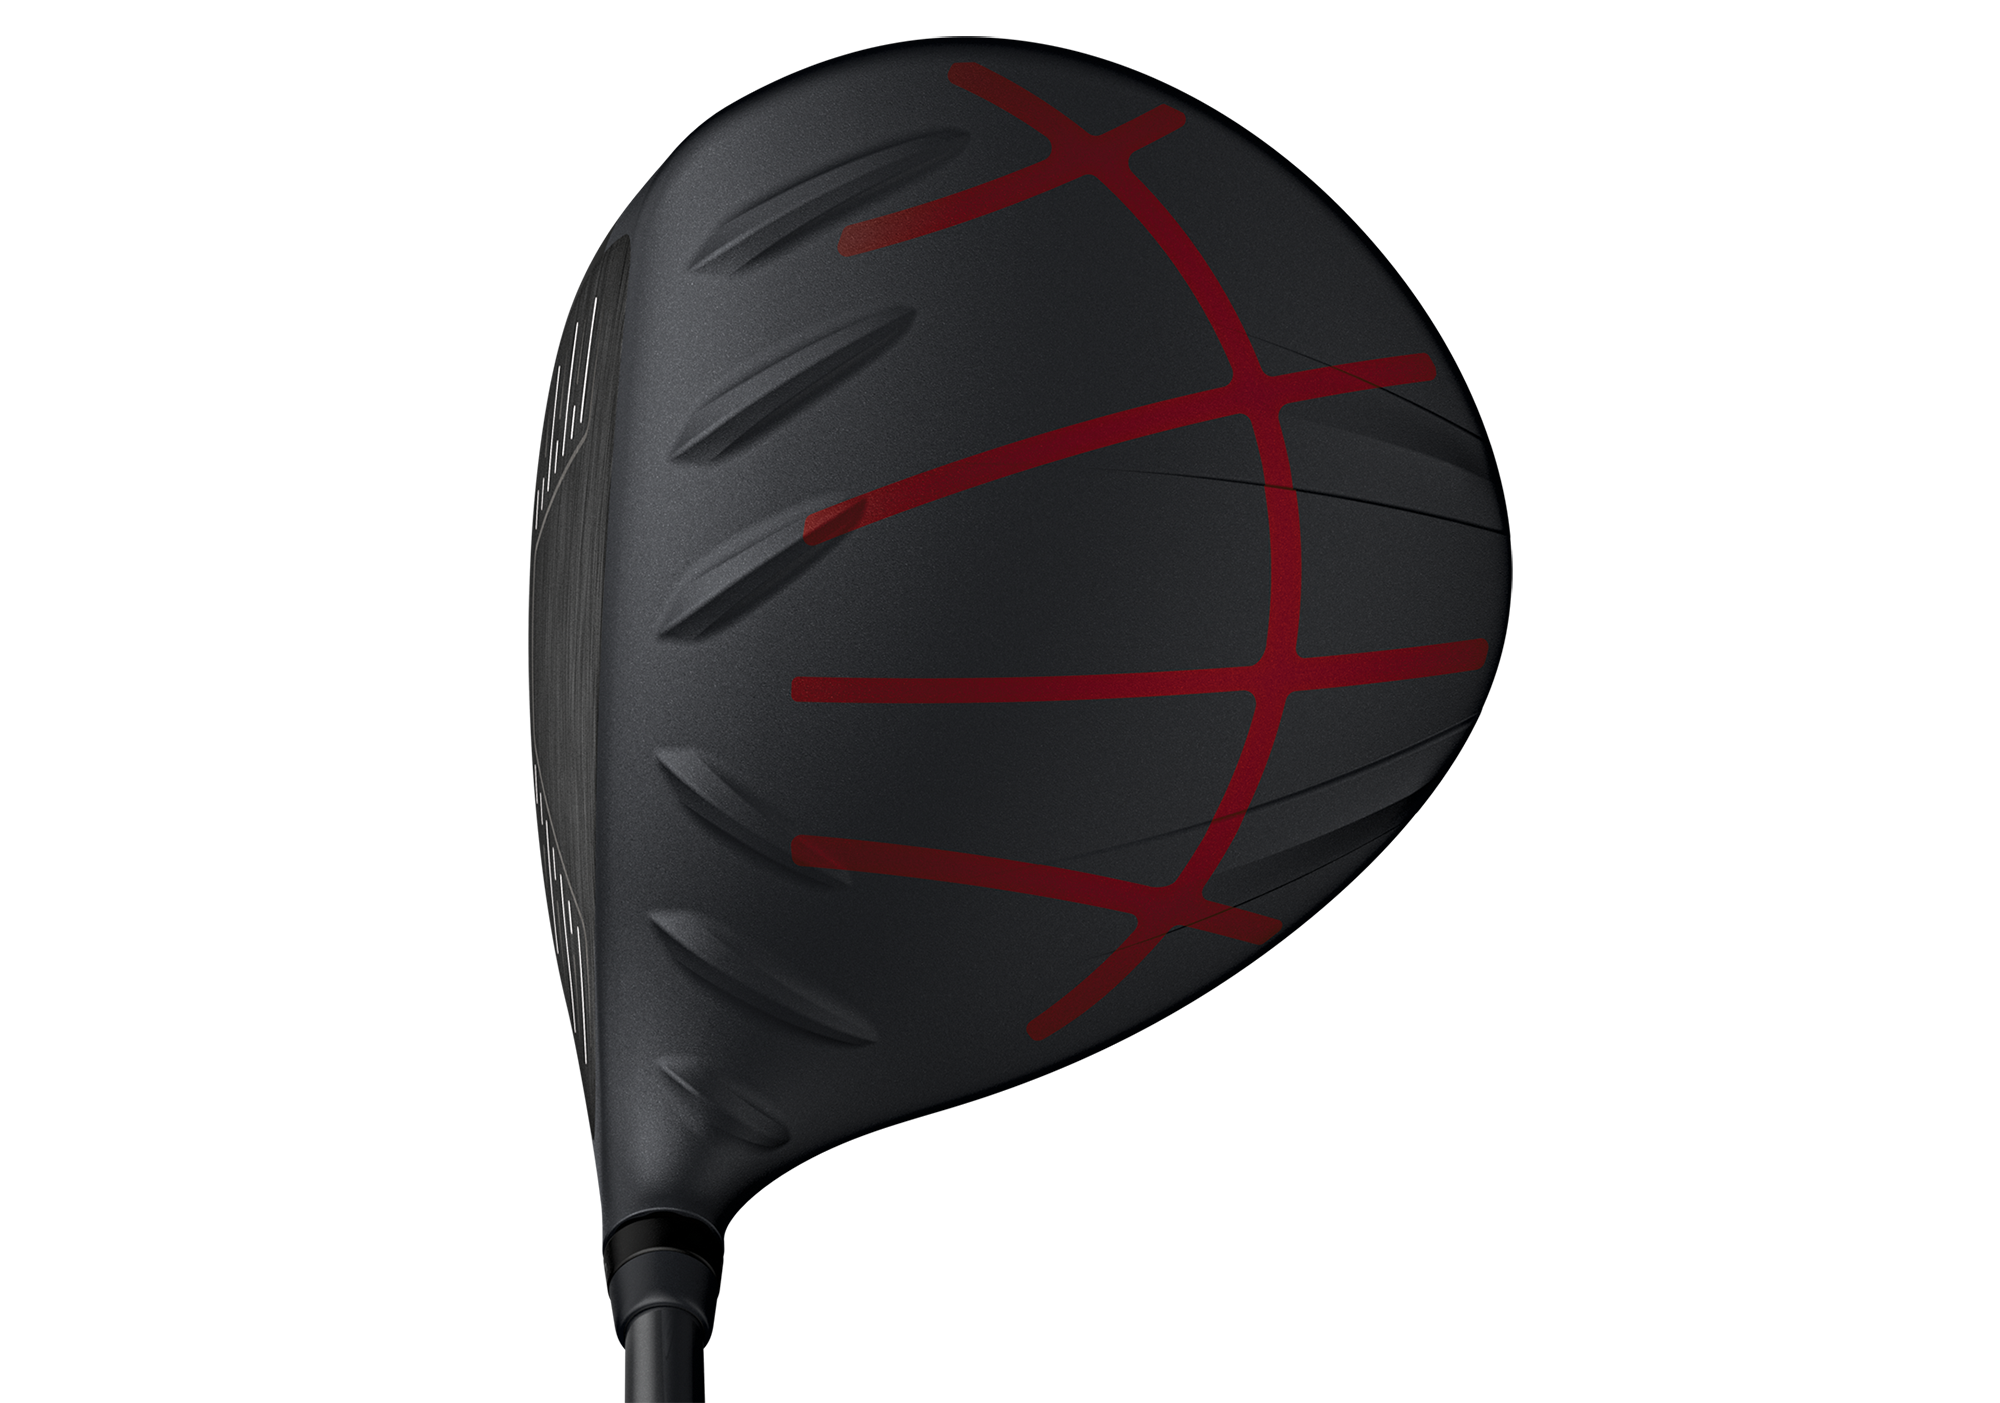 PING G410 Dragonfly Tech Image